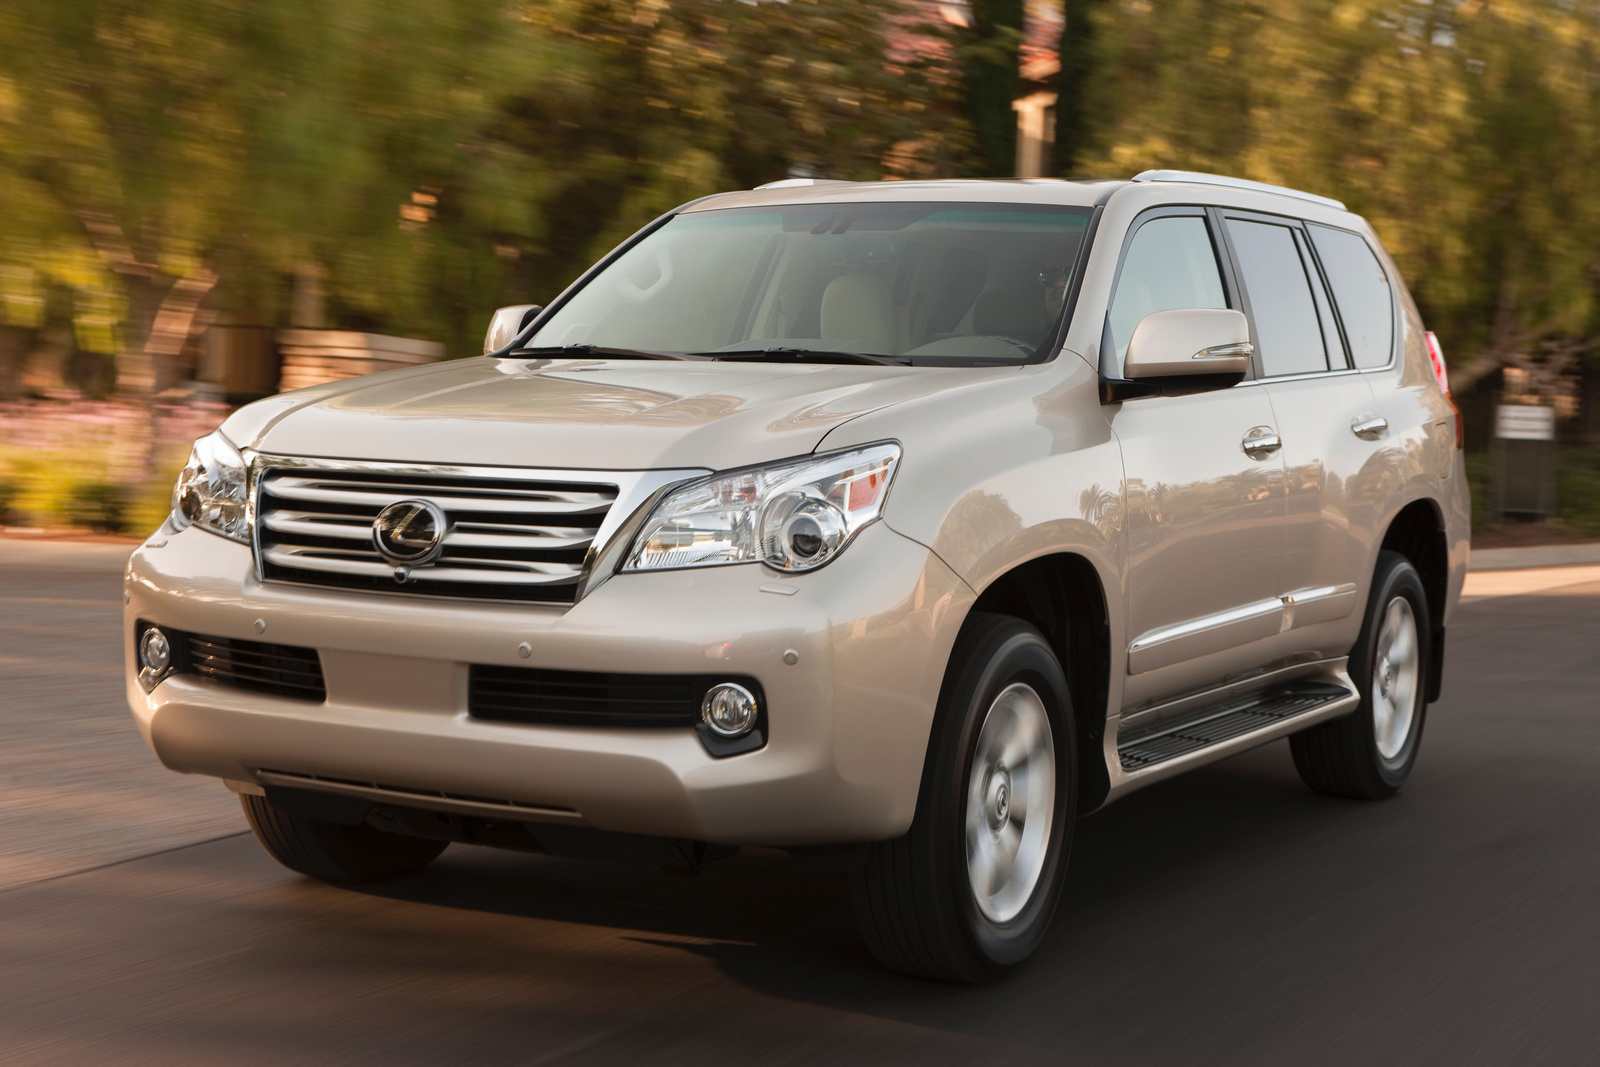 2013 lexus gx 460 review cargurus. Black Bedroom Furniture Sets. Home Design Ideas